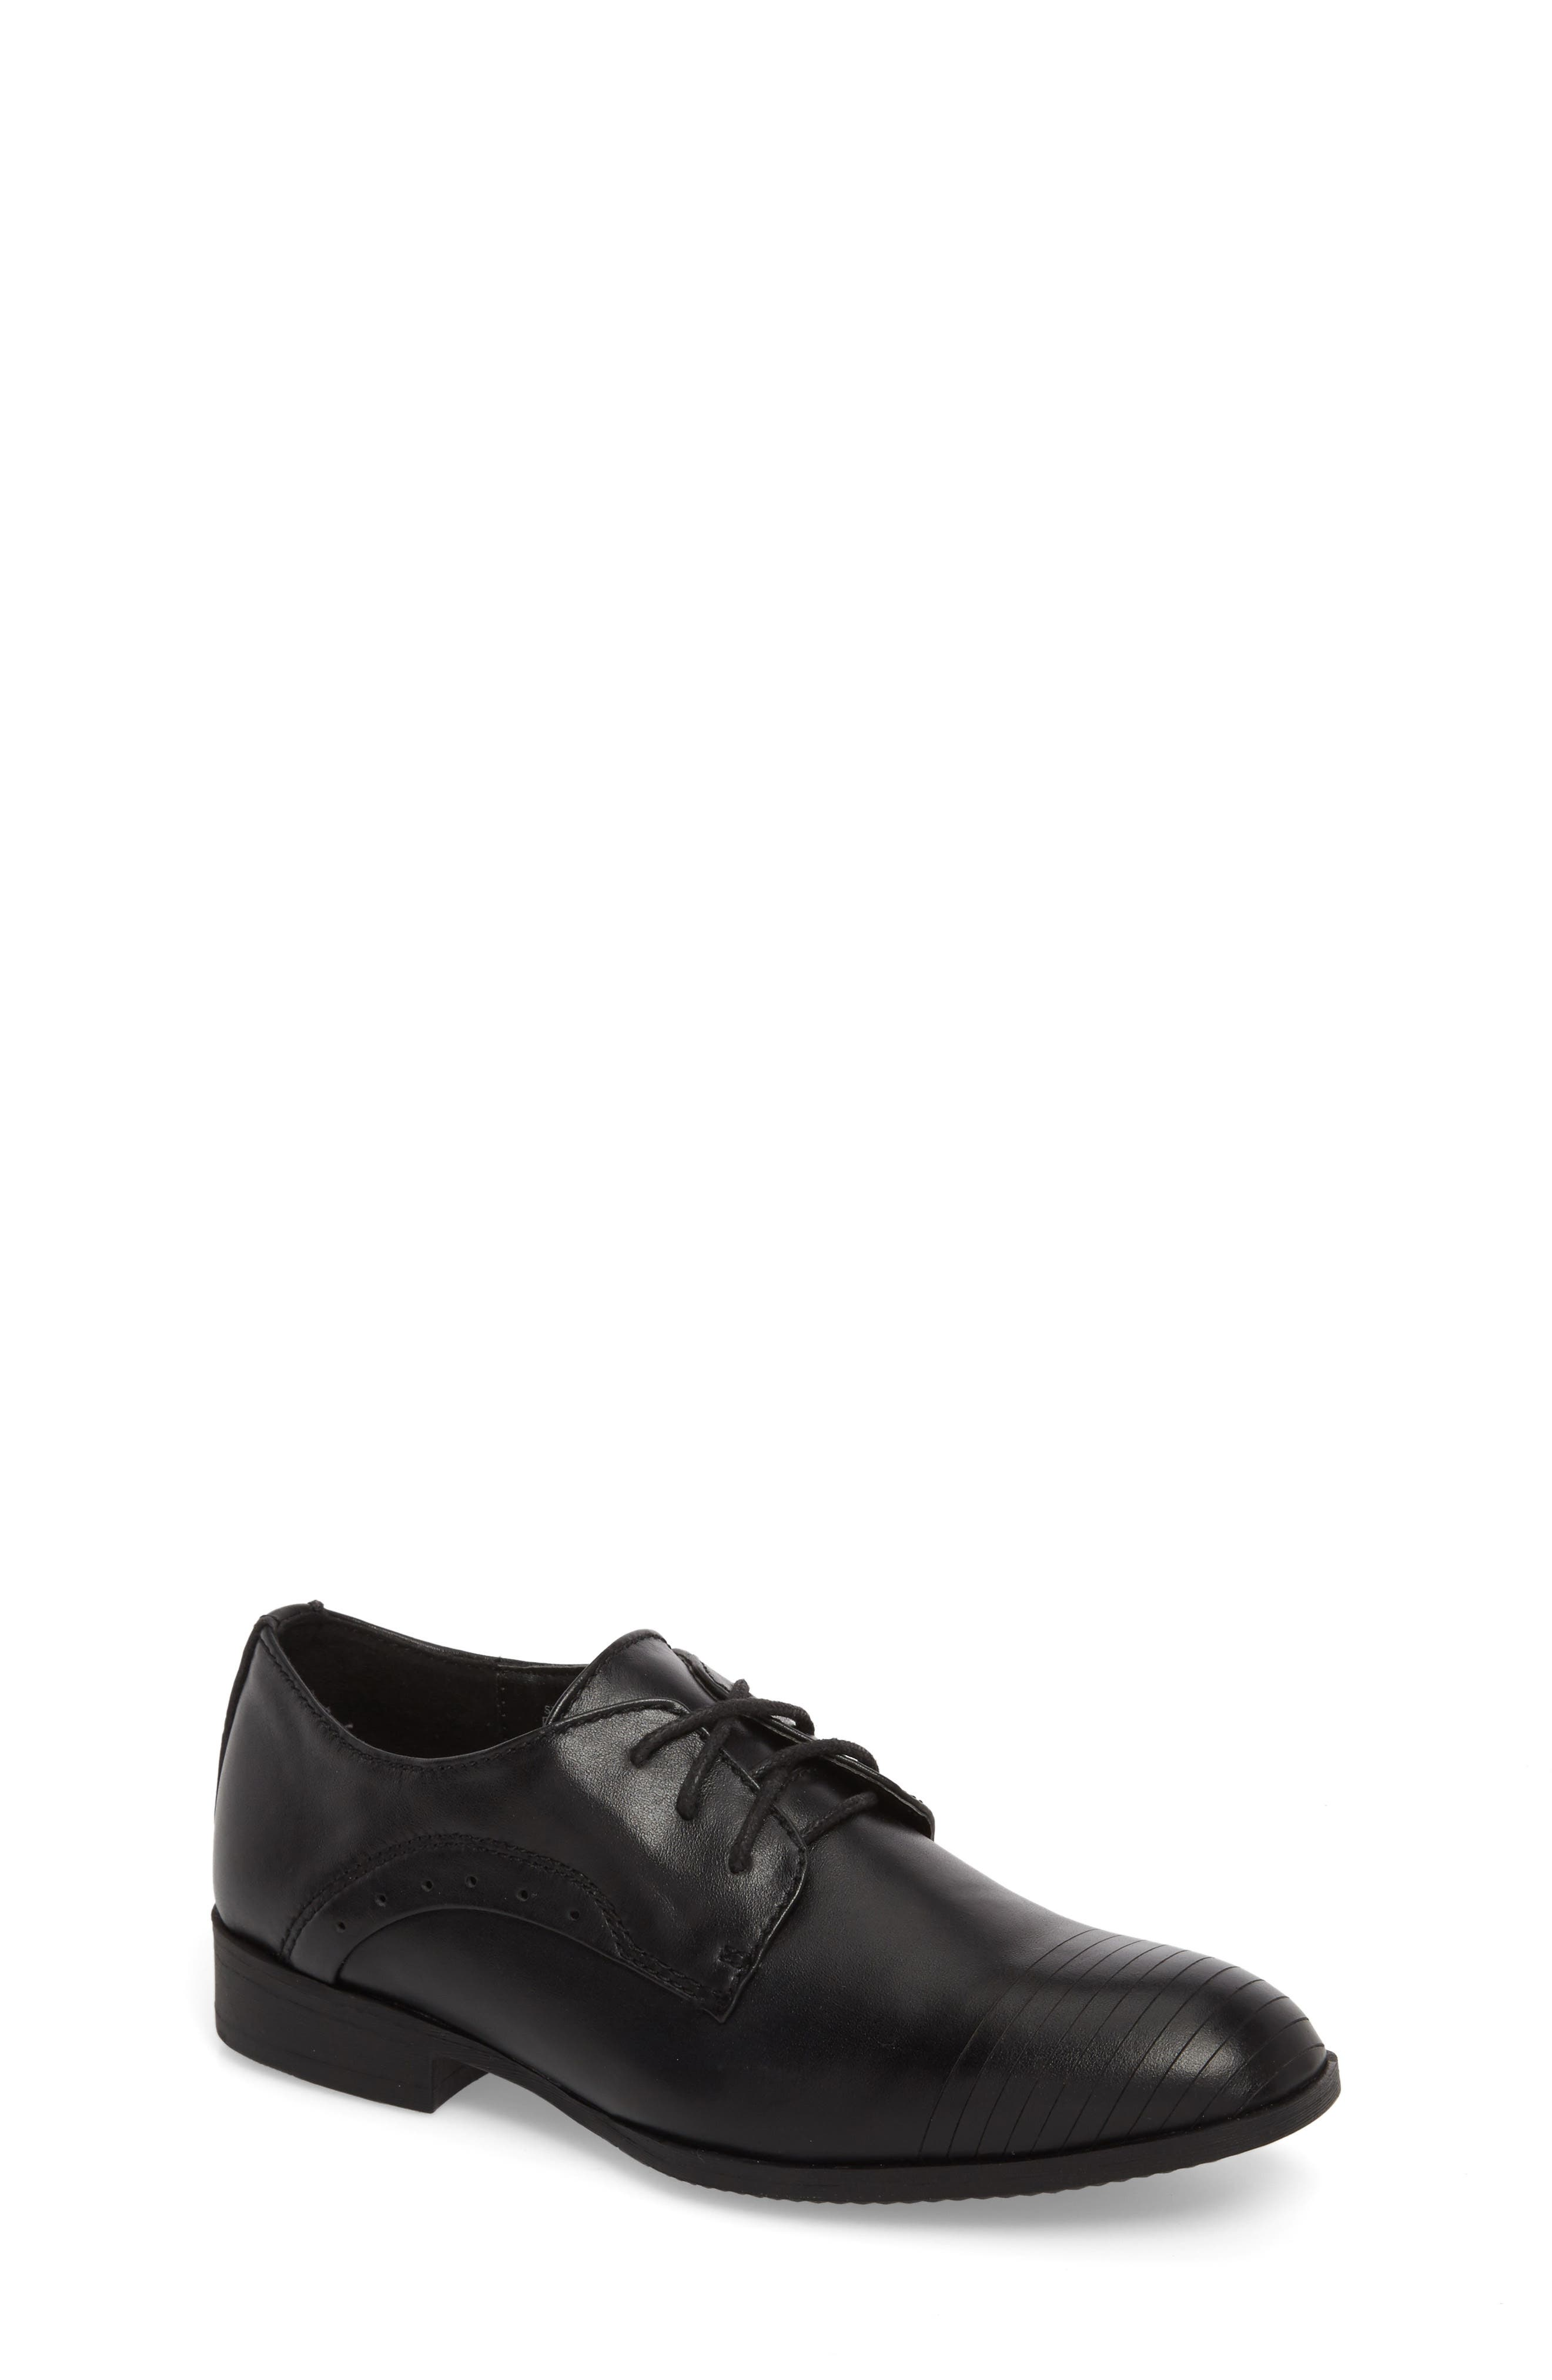 REACTION KENNETH COLE Straight Line Derby, Main, color, BLACK